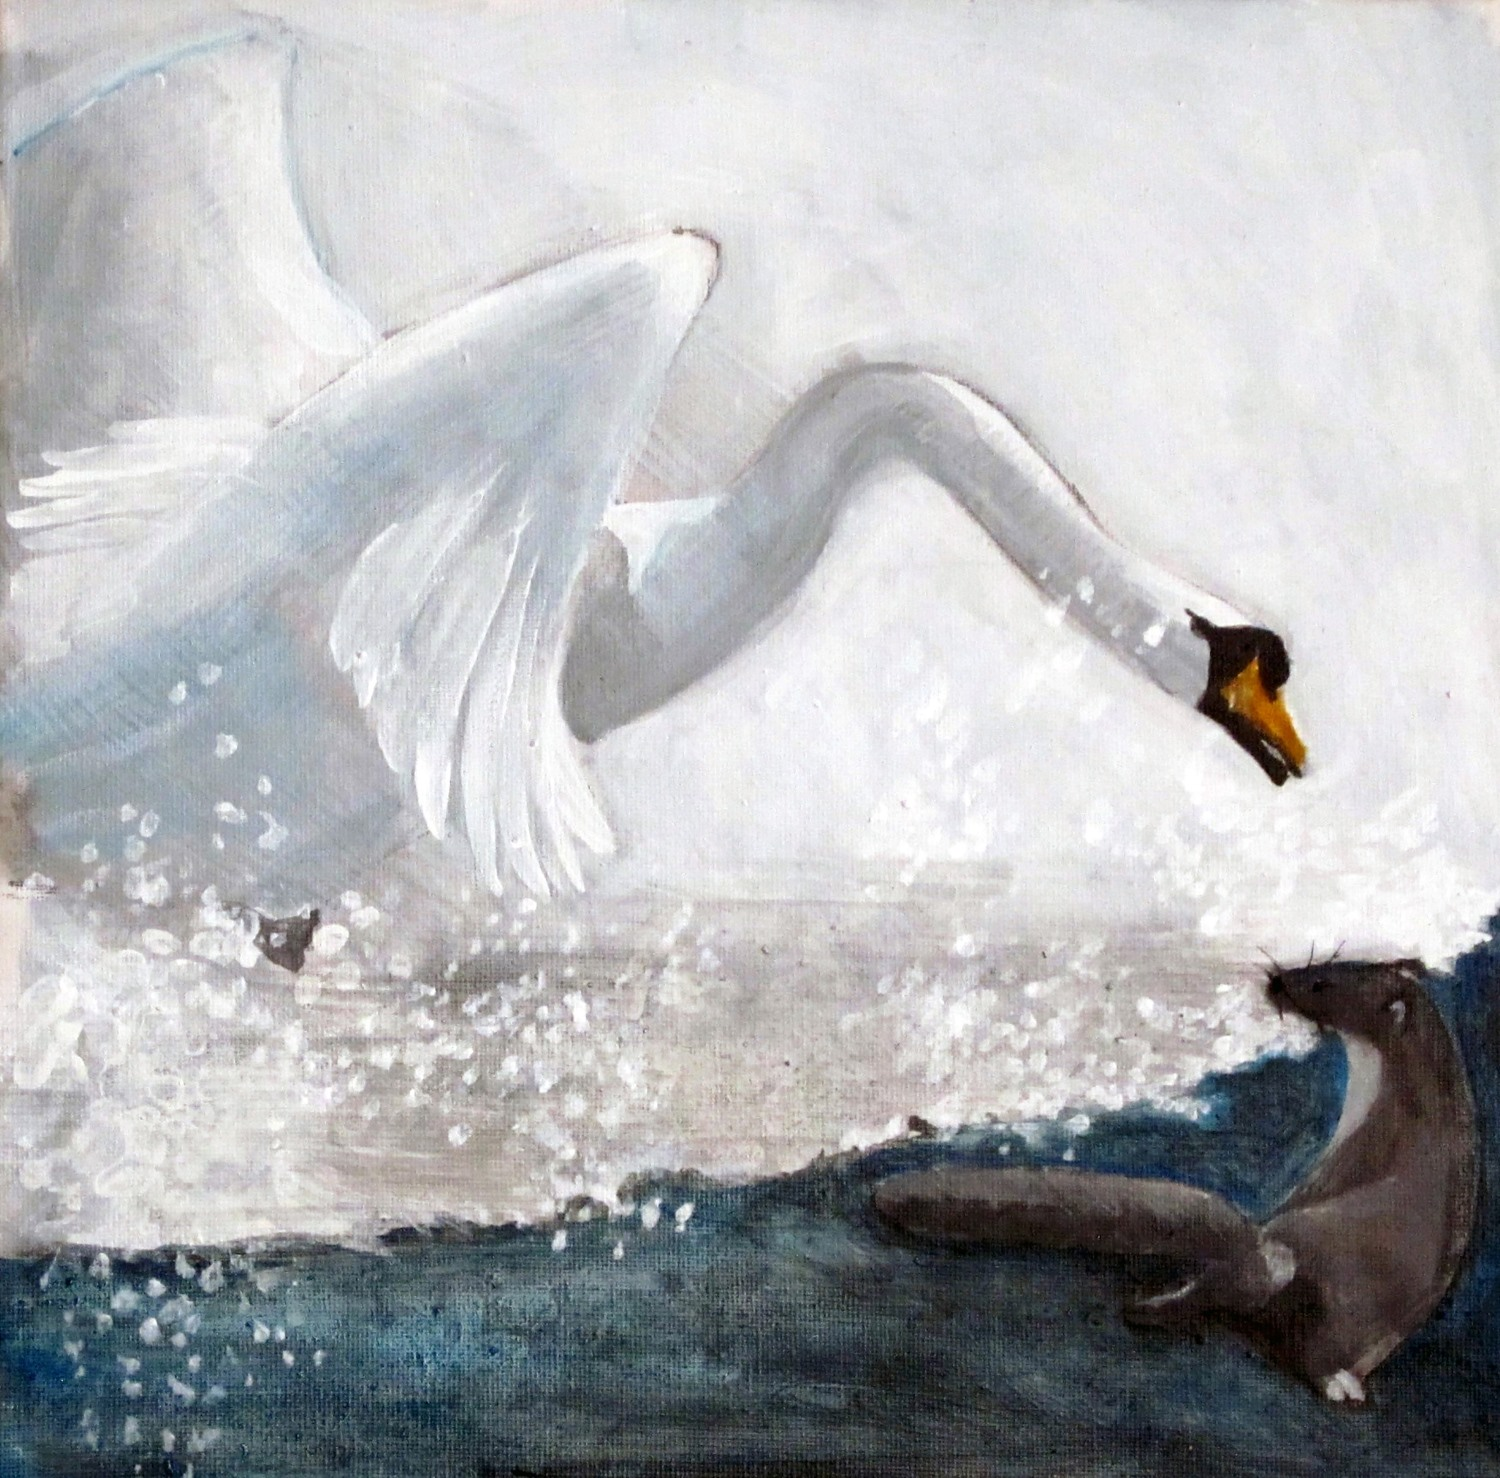 The Weasel and The Swan